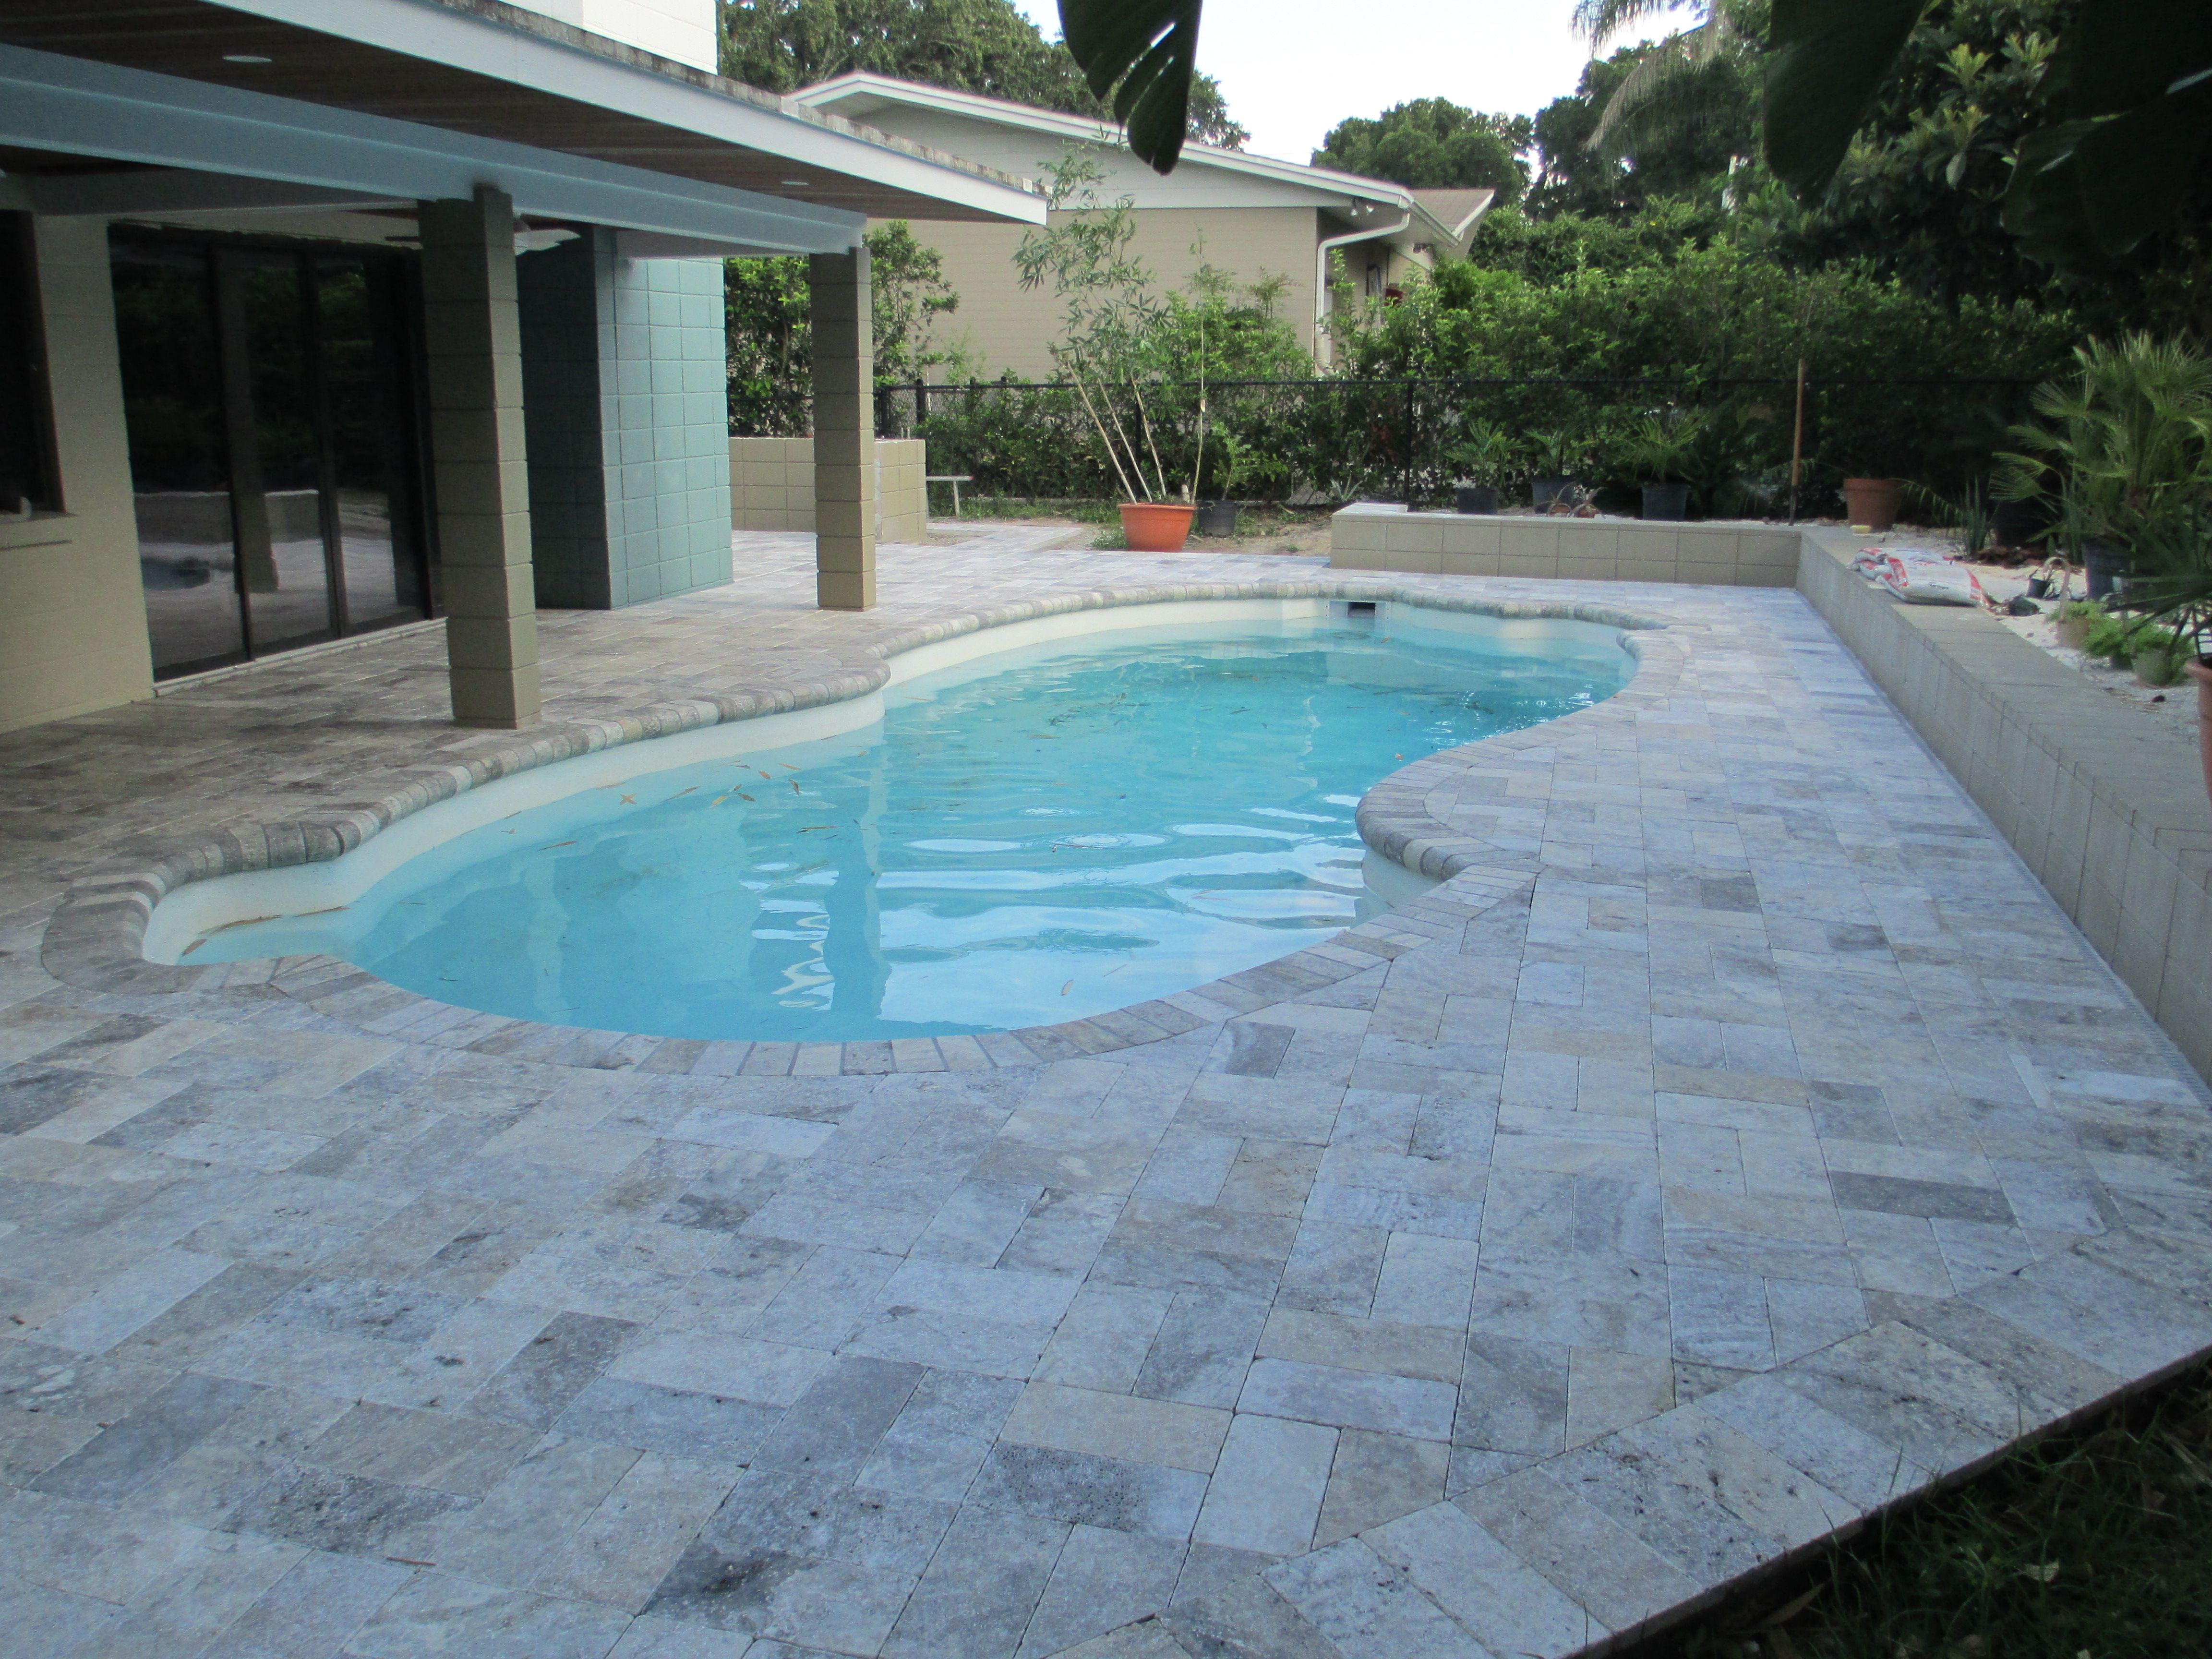 Painting Of Falling In Love With Travertine Pavers Pool Deck